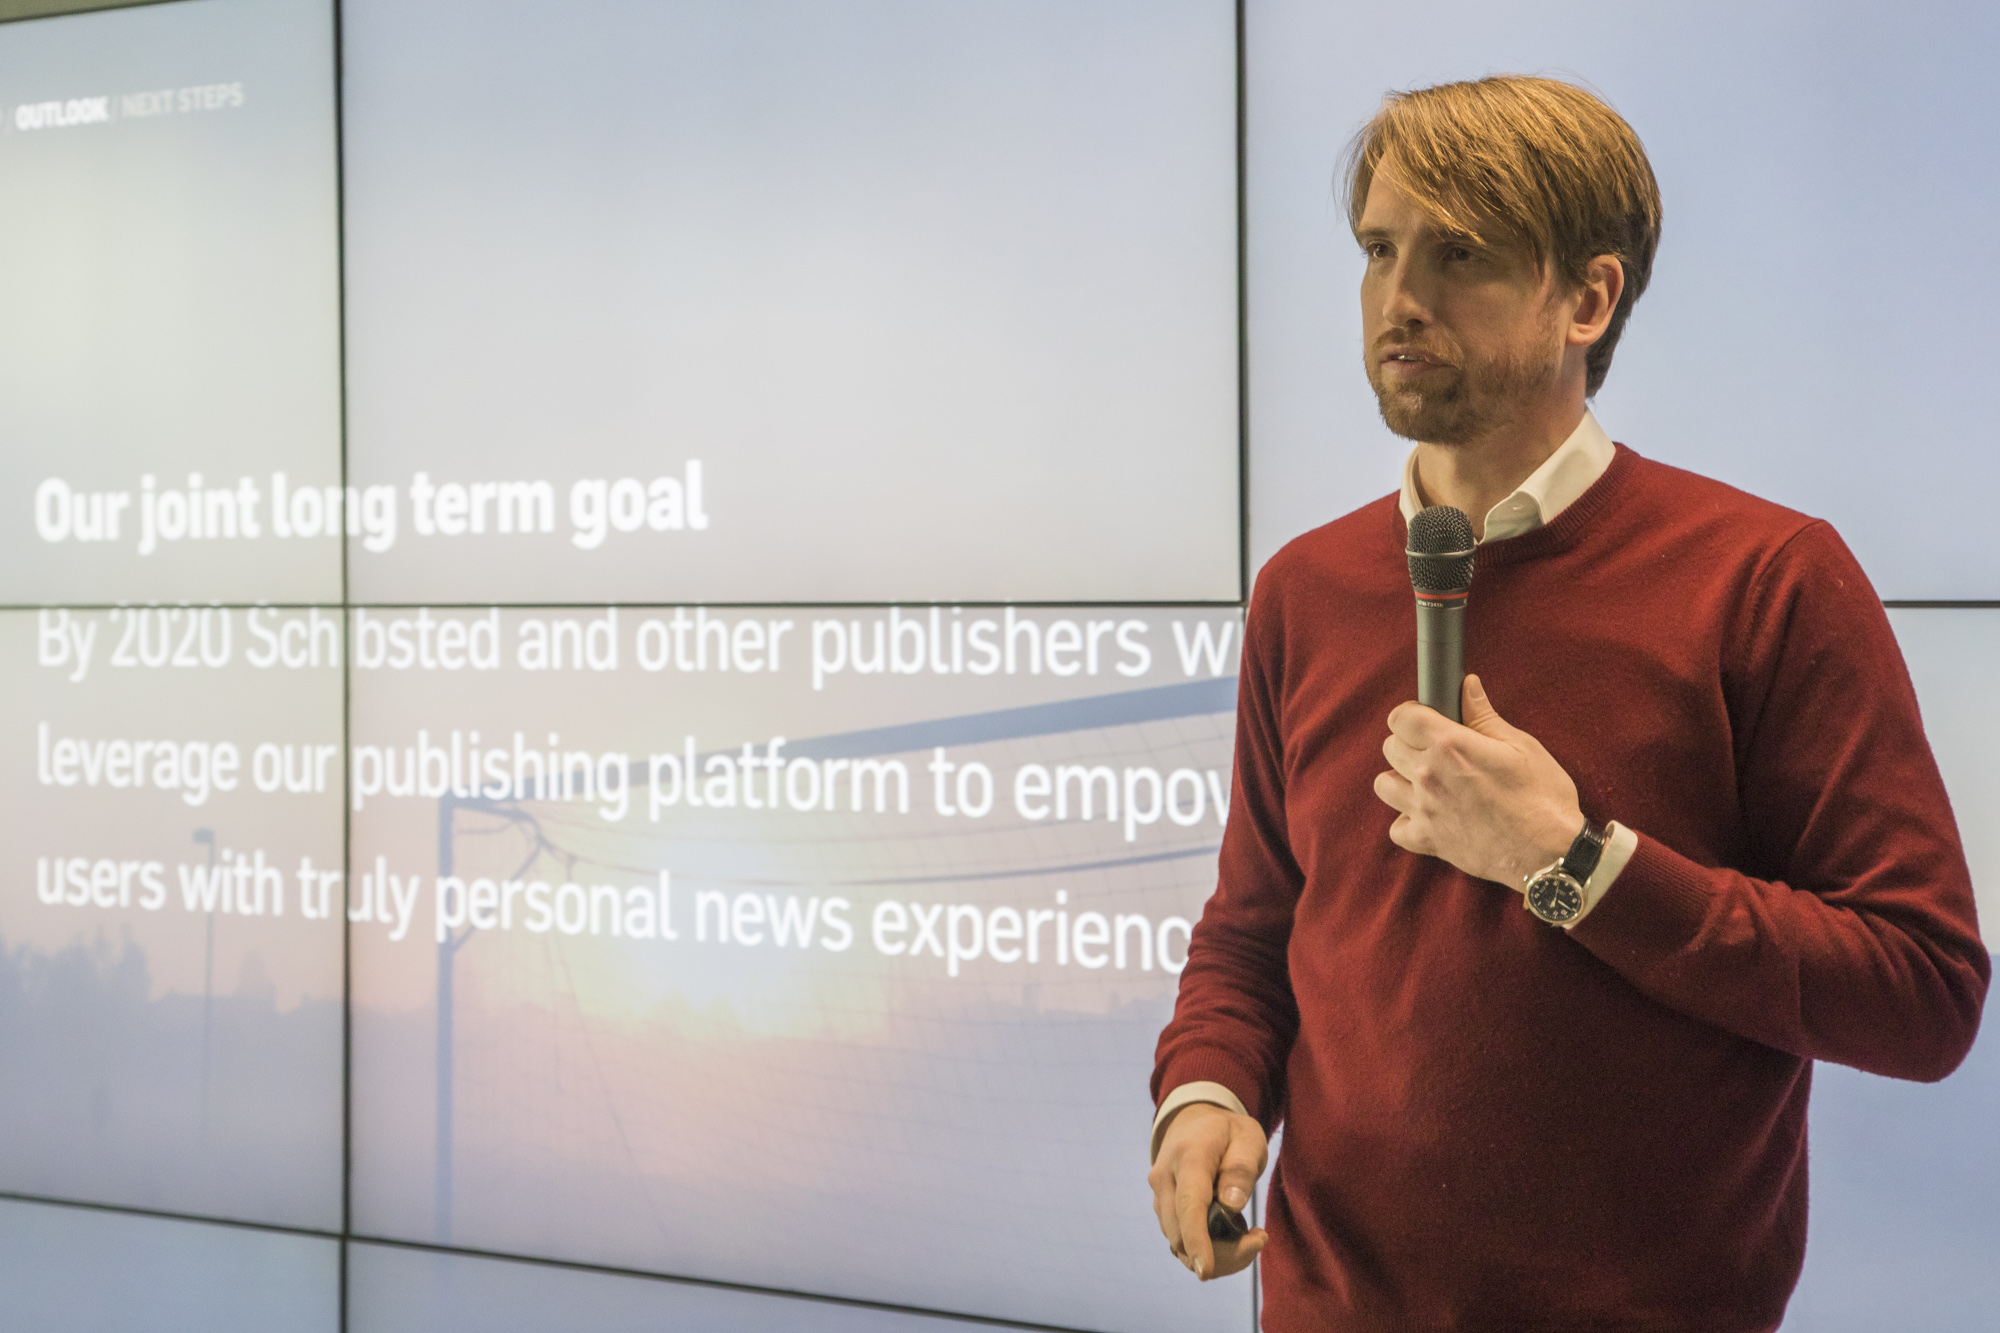 VP Product for Schibsted Publishing Platform, Ian Vännman, presents the ambitious plans for the software engineers in Schibsted Tech Polska